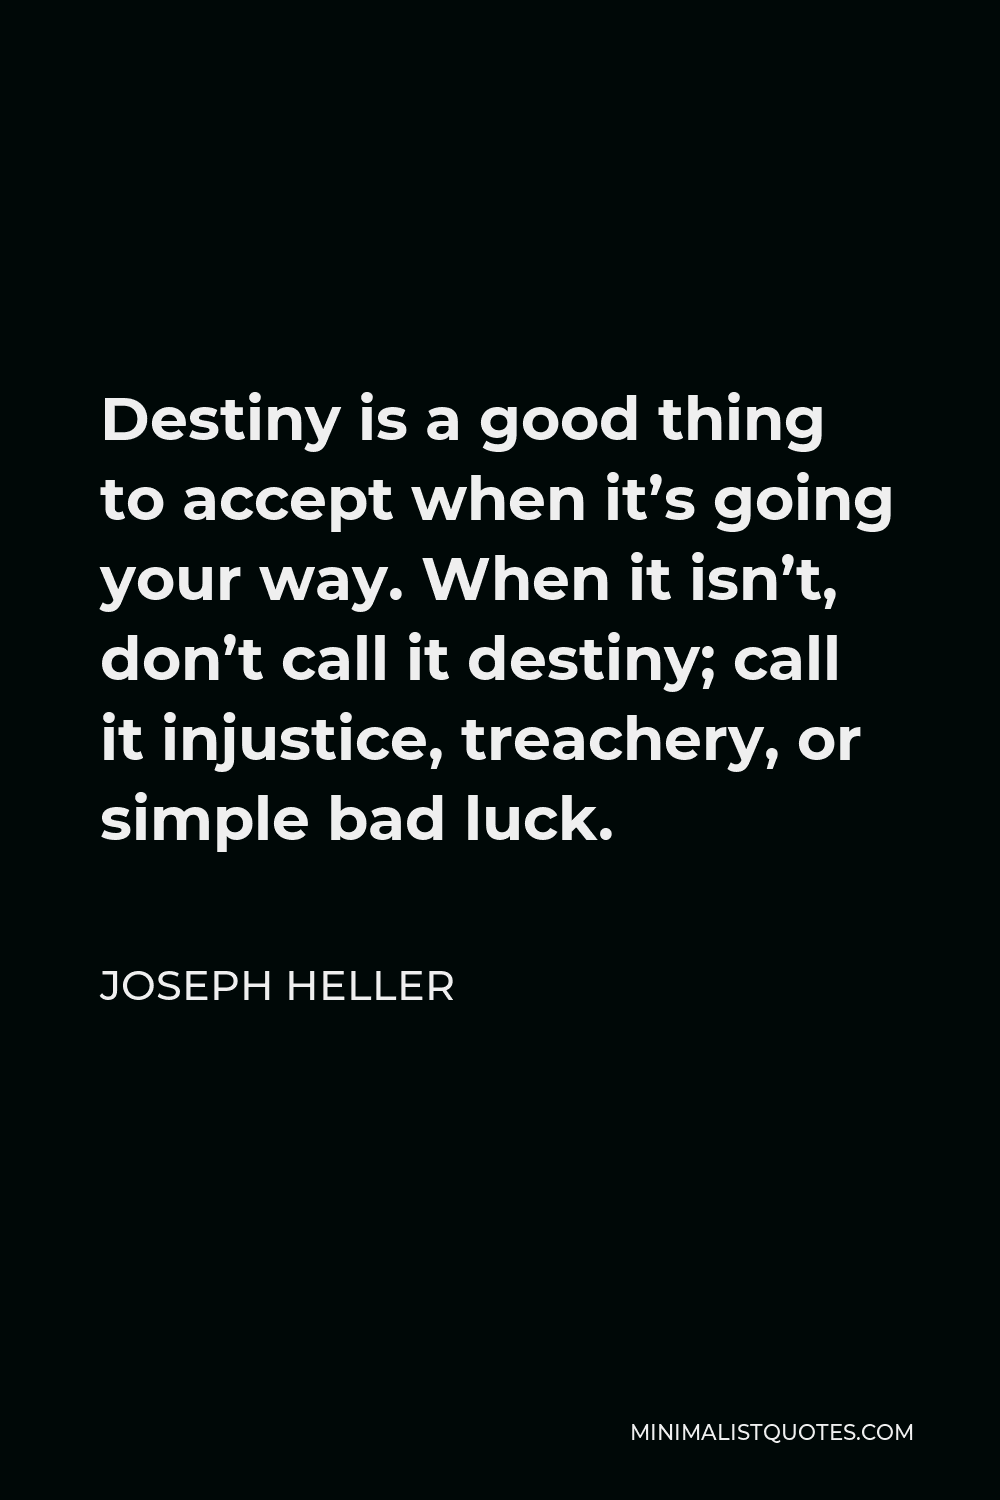 Joseph Heller Quote - Destiny is a good thing to accept when it's going your way. When it isn't, don't call it destiny; call it injustice, treachery, or simple bad luck.